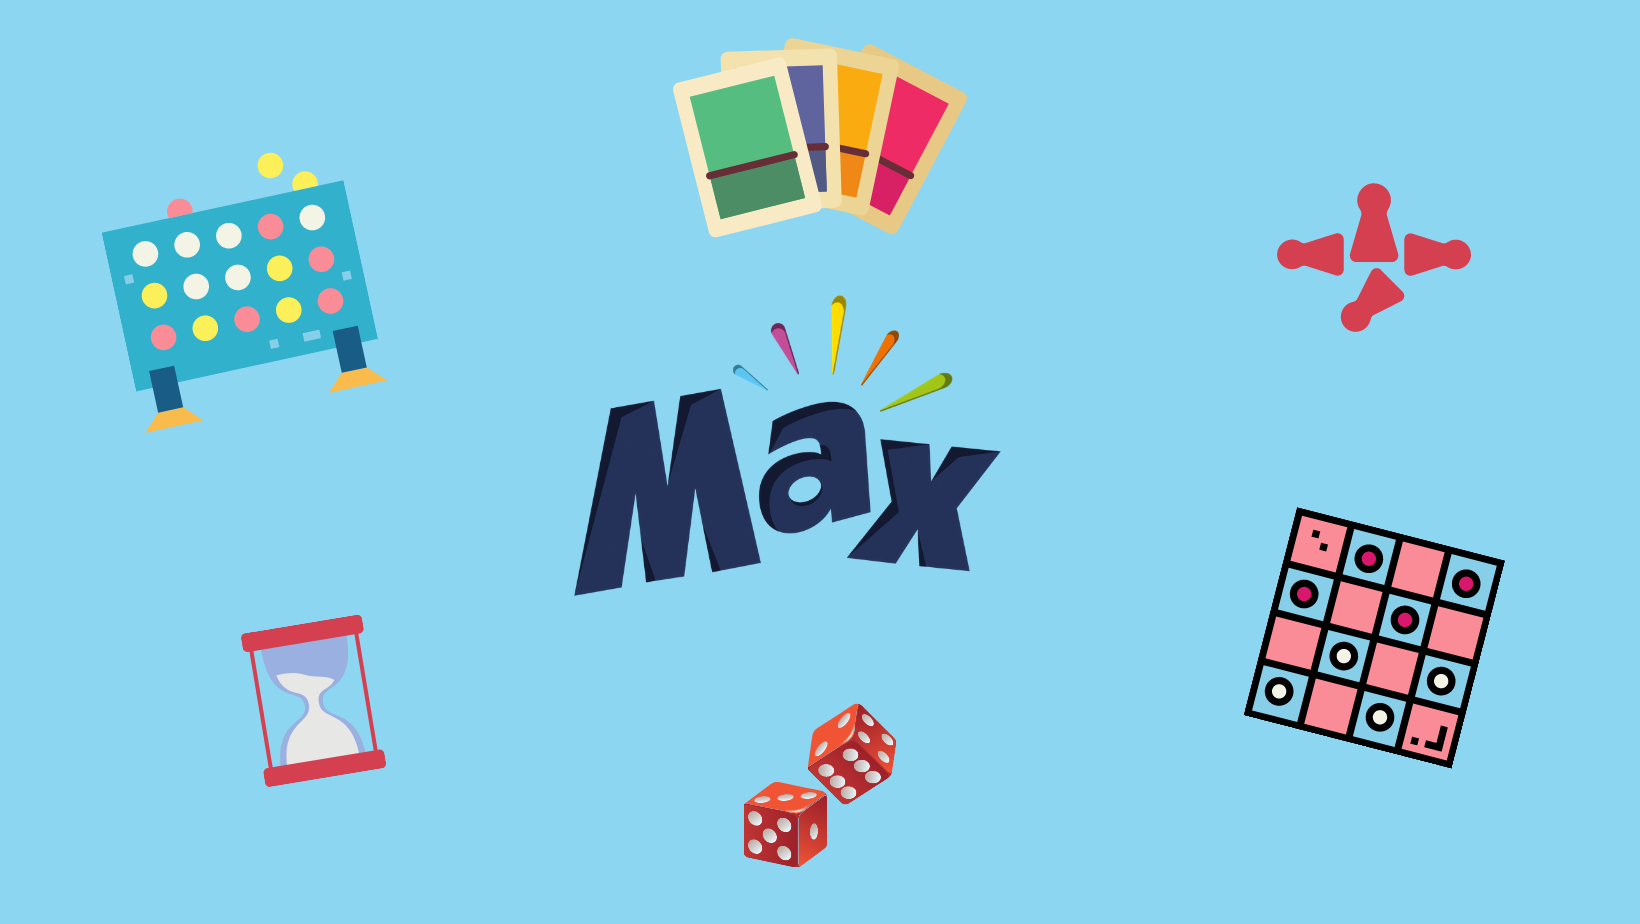 Max | Doe mee en win